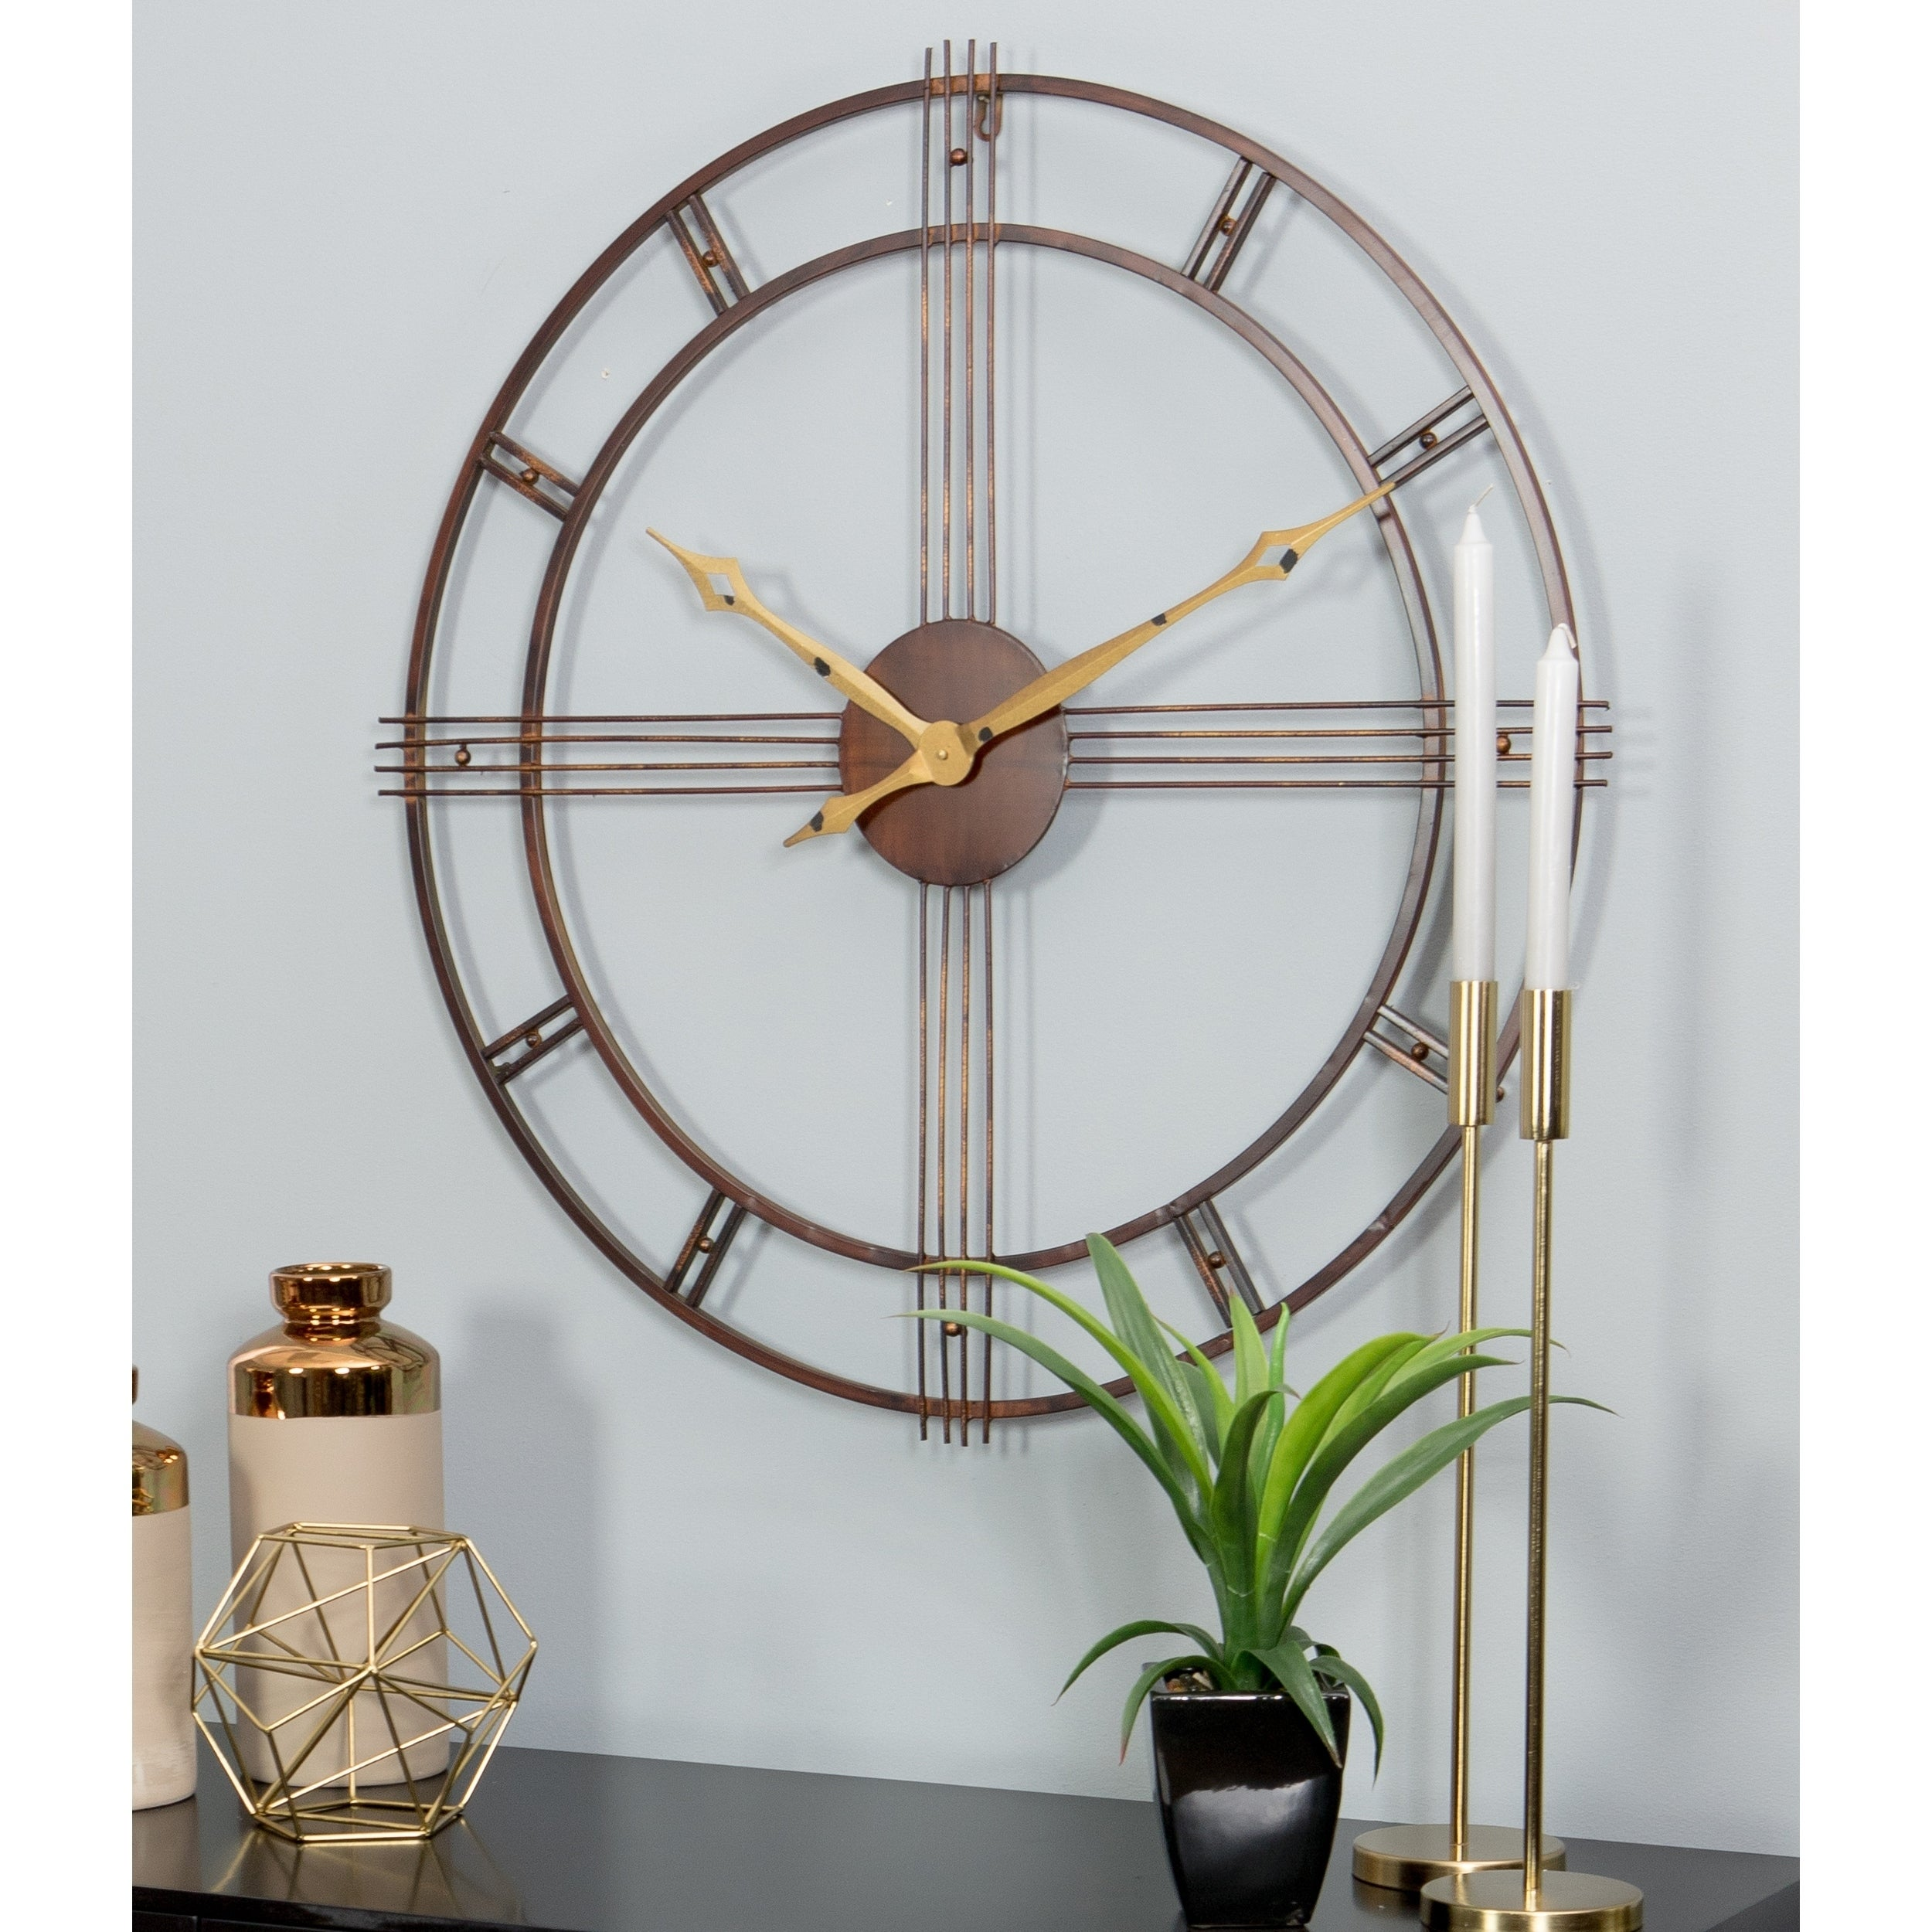 Shop rumi mid century wall clock free shipping today overstock com 12557431